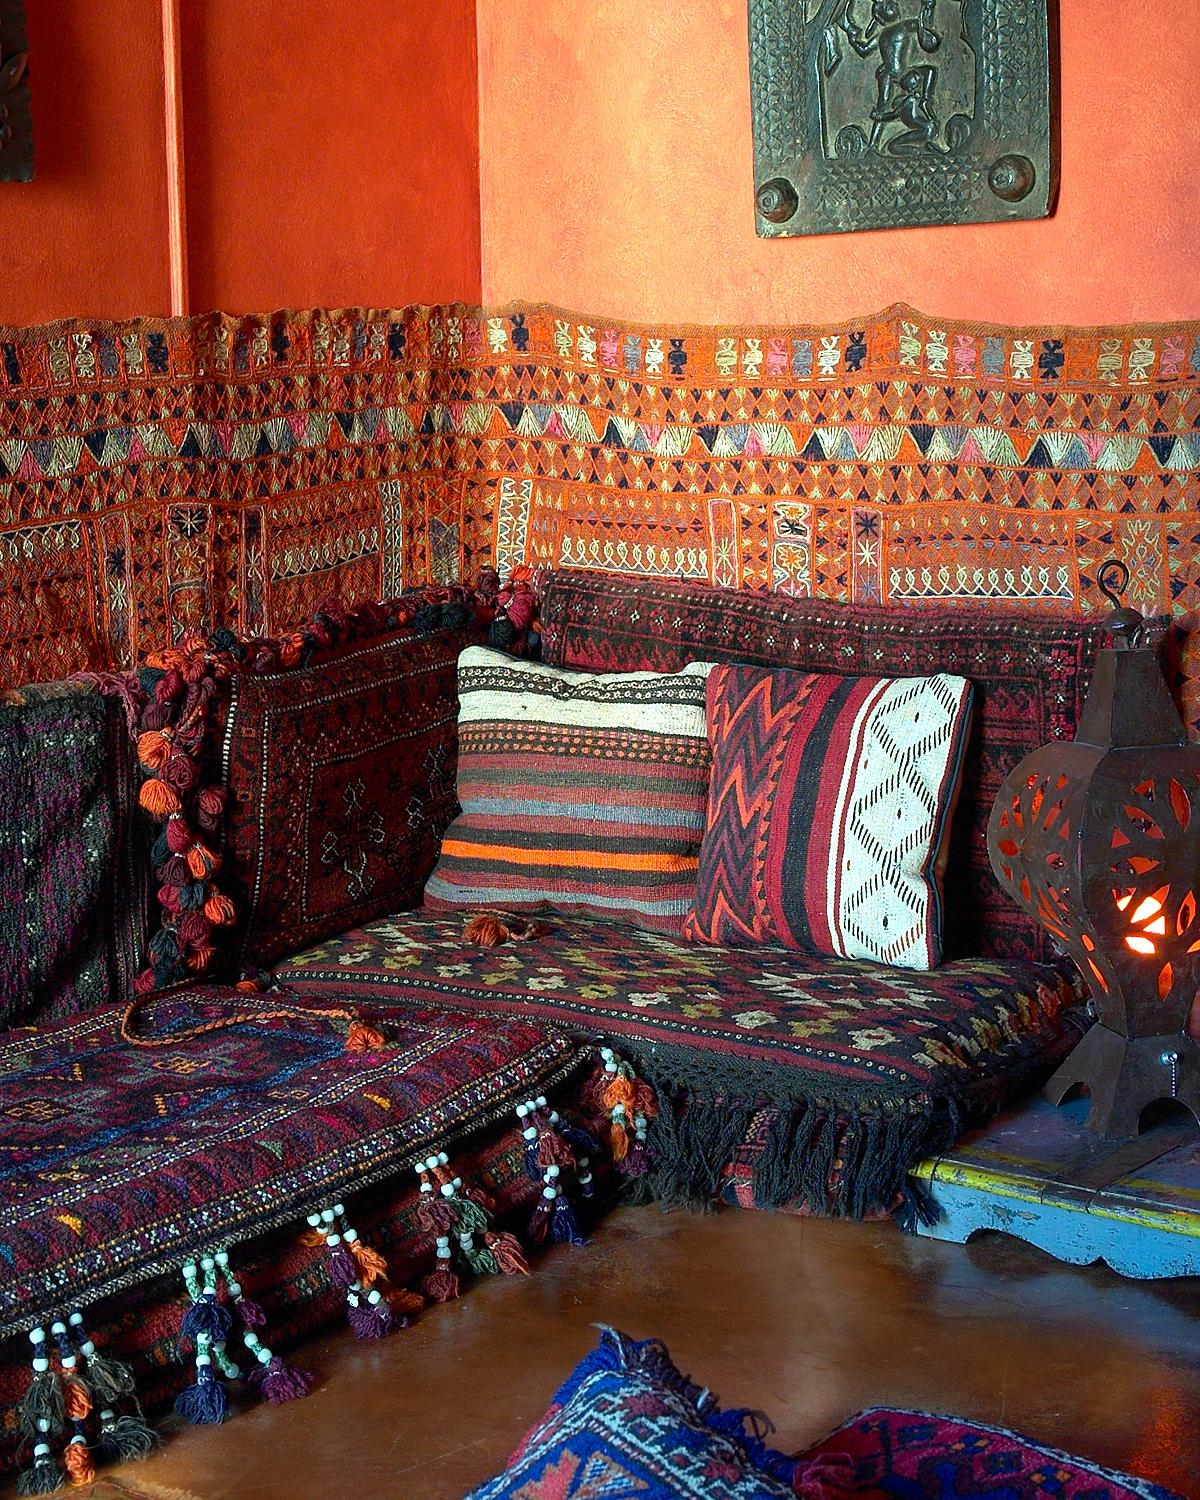 Moroccan Arabian Floor Seating Not In Morocco But The Figueroa Pertaining To Moroccan Floor Seating (Image 10 of 15)